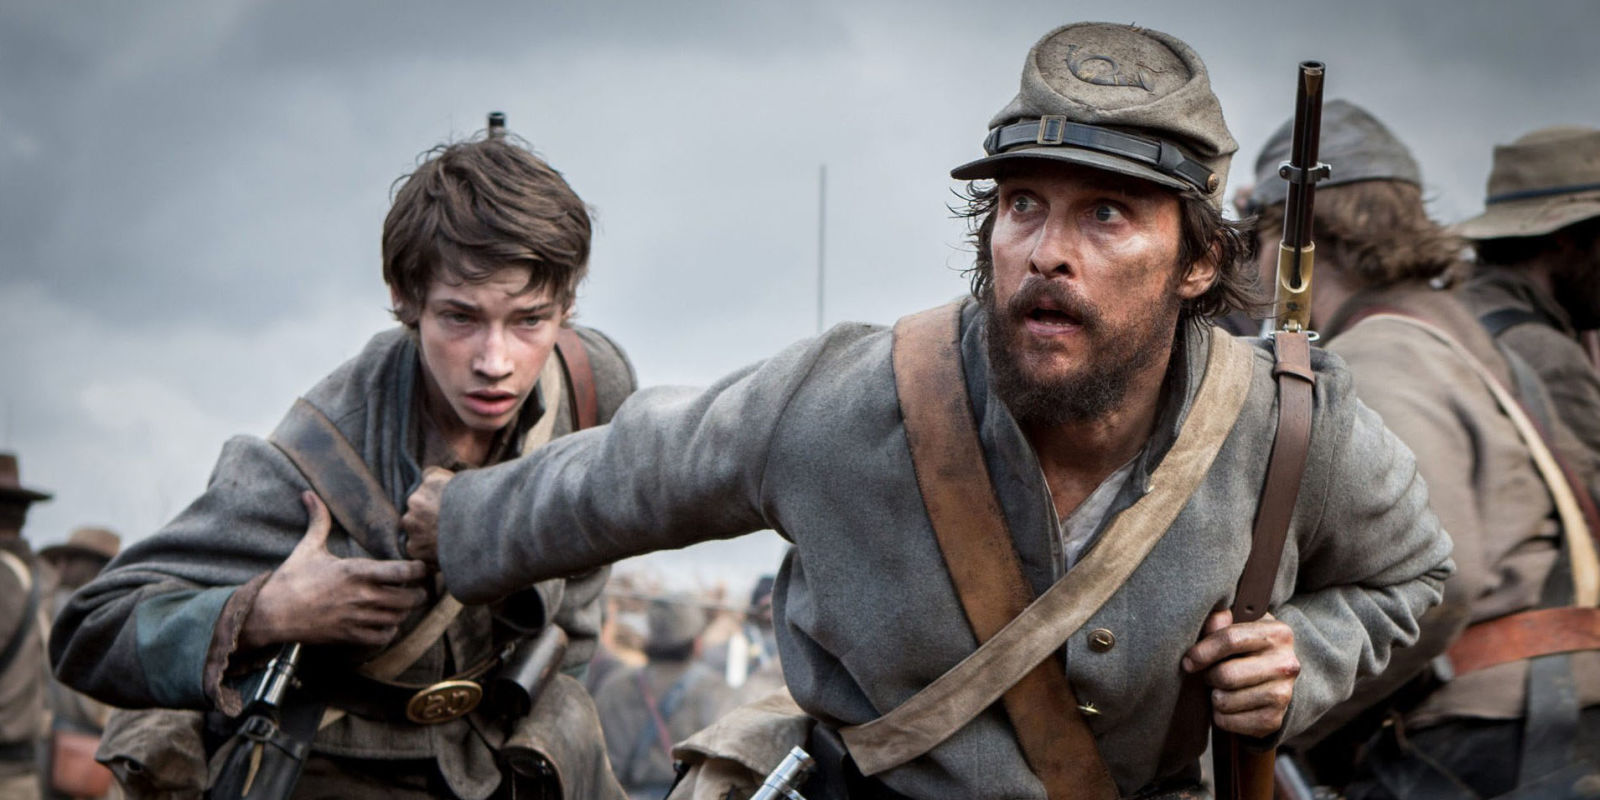 Matthew McConaughey as Newton Knight in The Free State of Jones